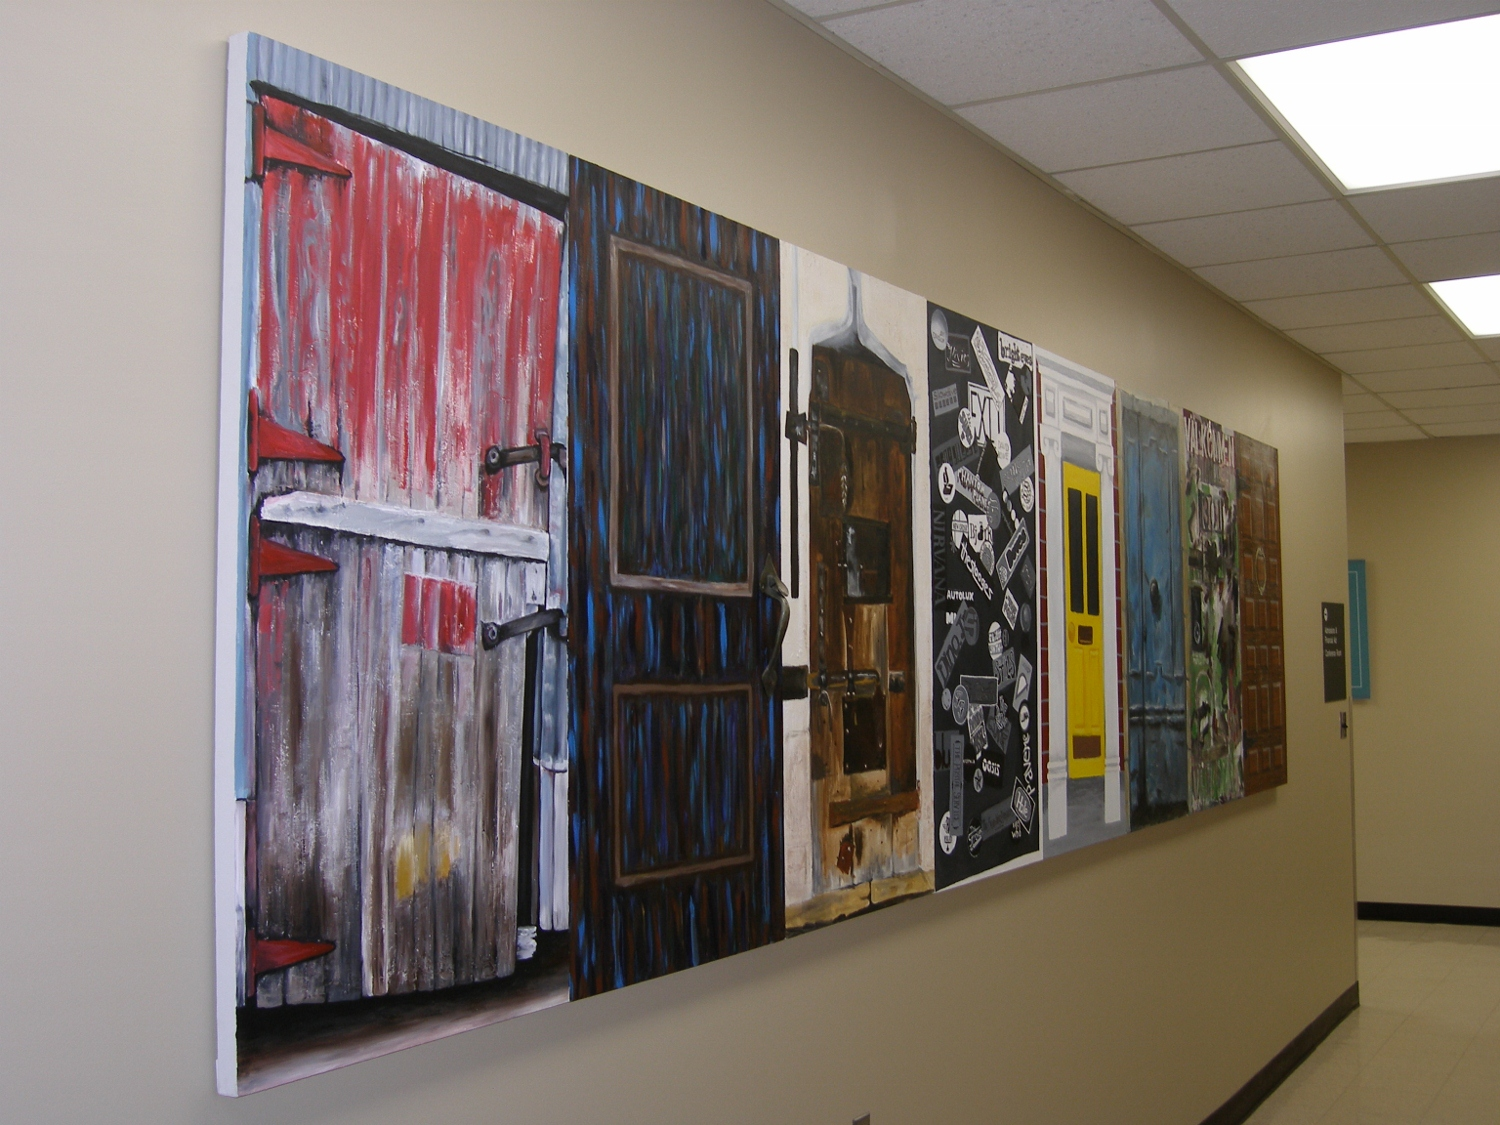 Admissions Office Mural, University of MN, Morris, MN, 2006 (Mine is the barn door on the far left)